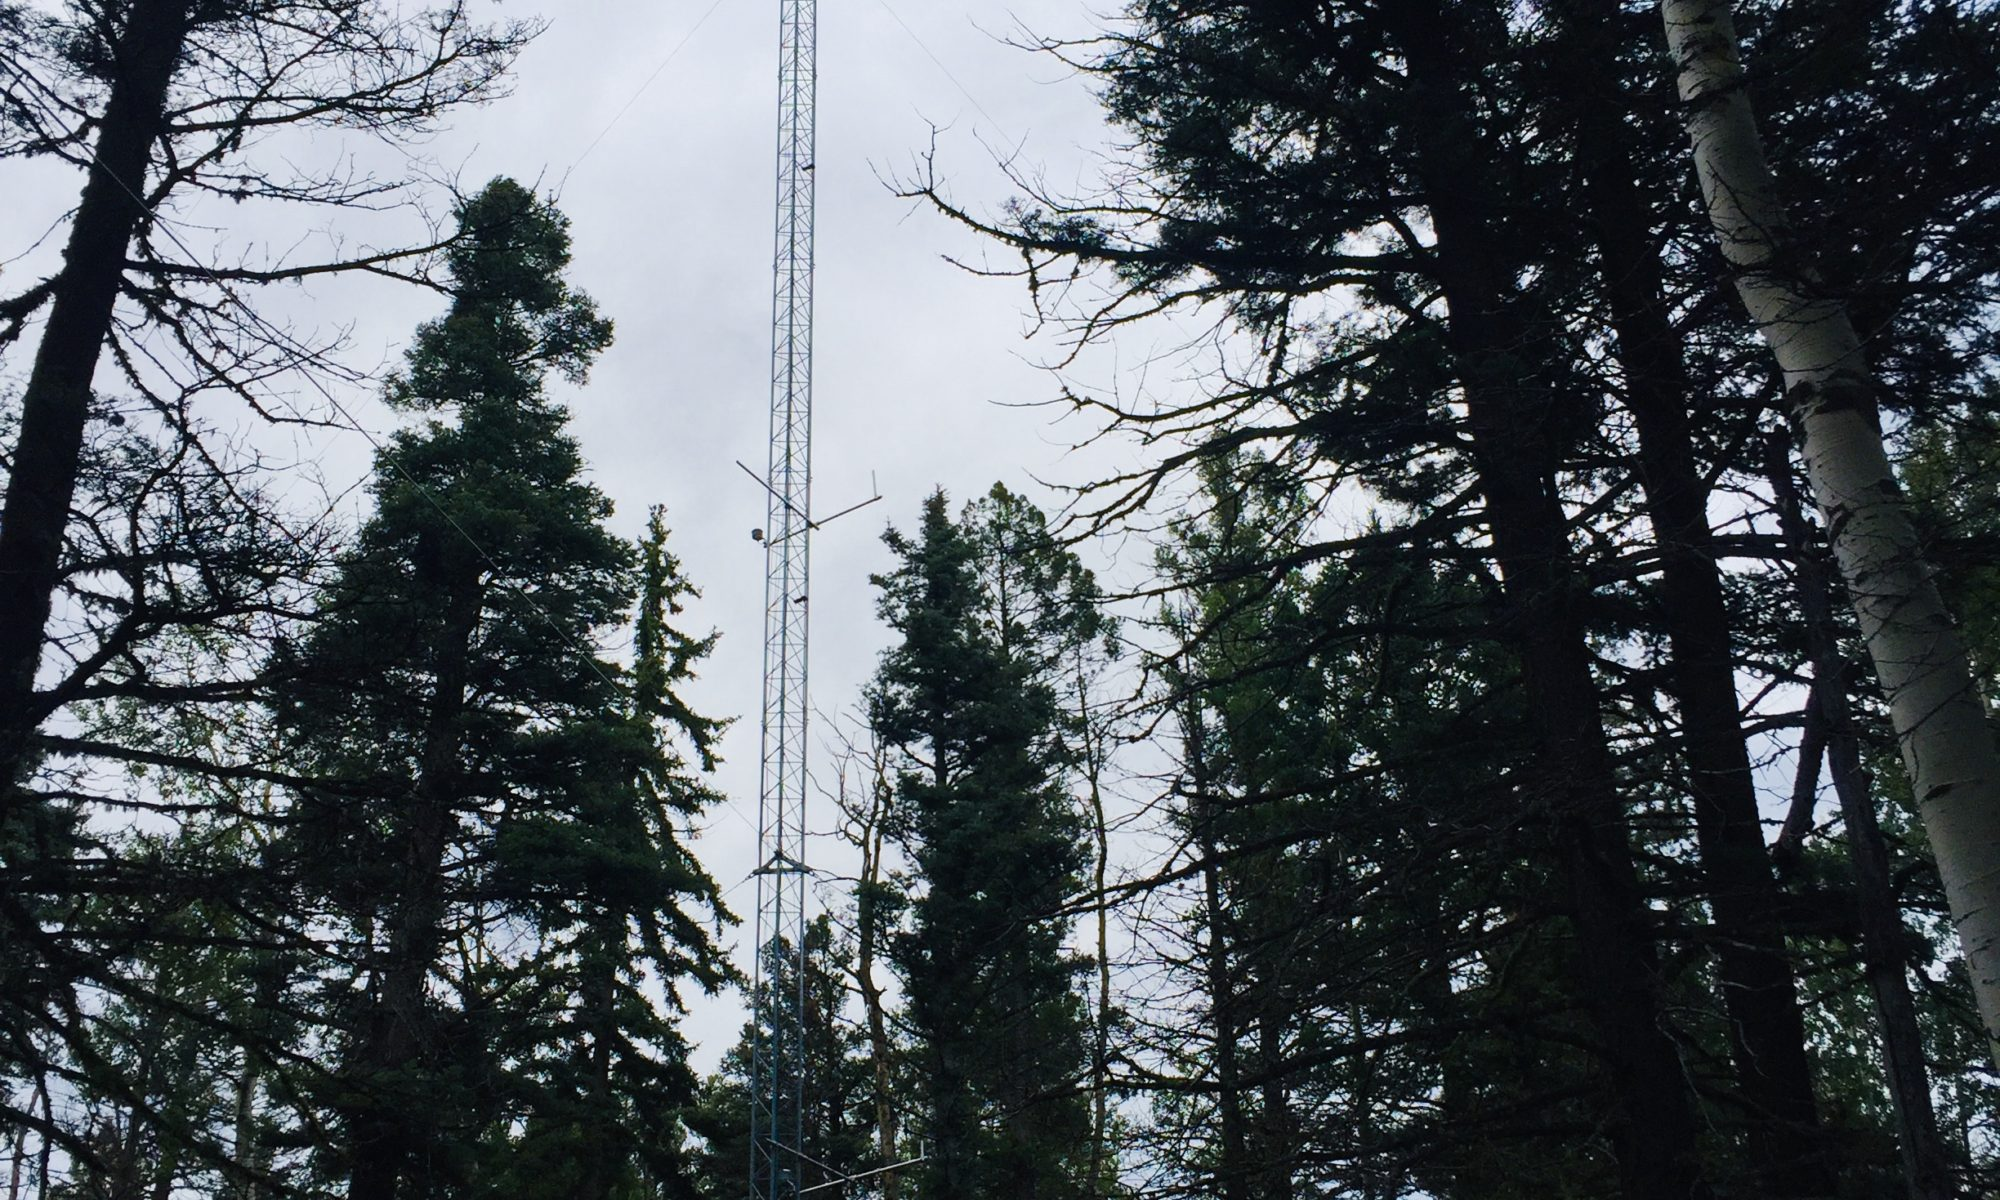 Picture of flux tower in Ponderosa Pine forest